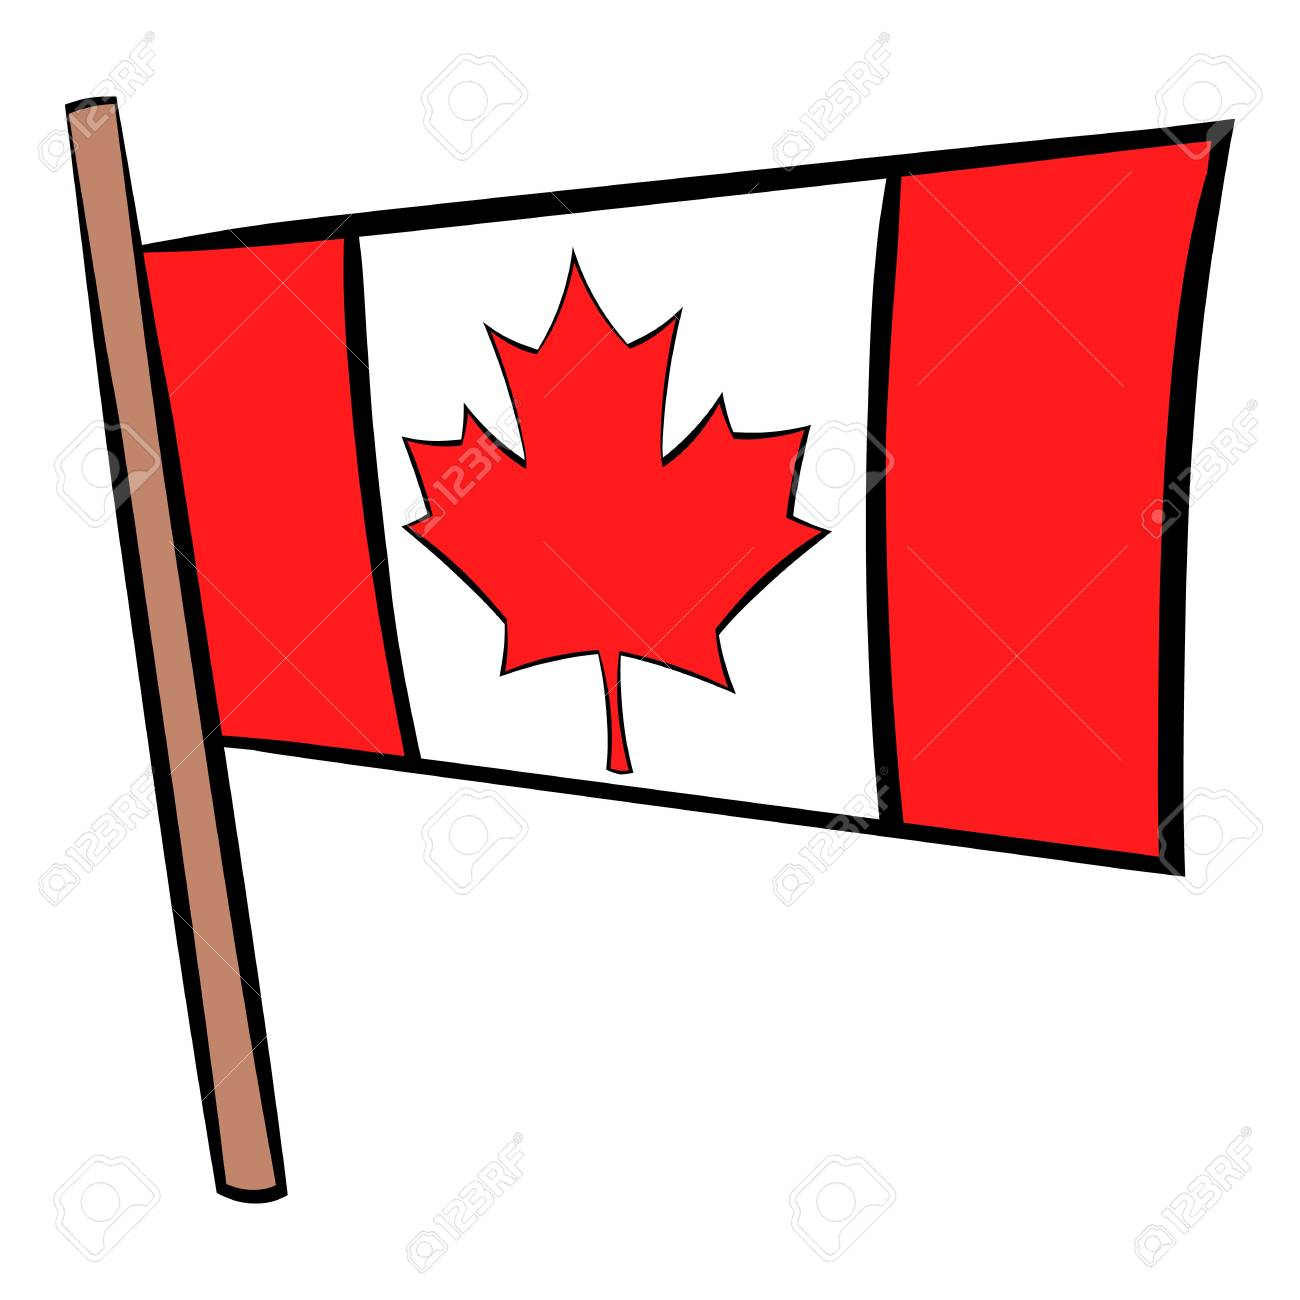 flag of canada icon cartoon royalty free cliparts vectors and rh 123rf com cartoon flag images cartoon flag waving